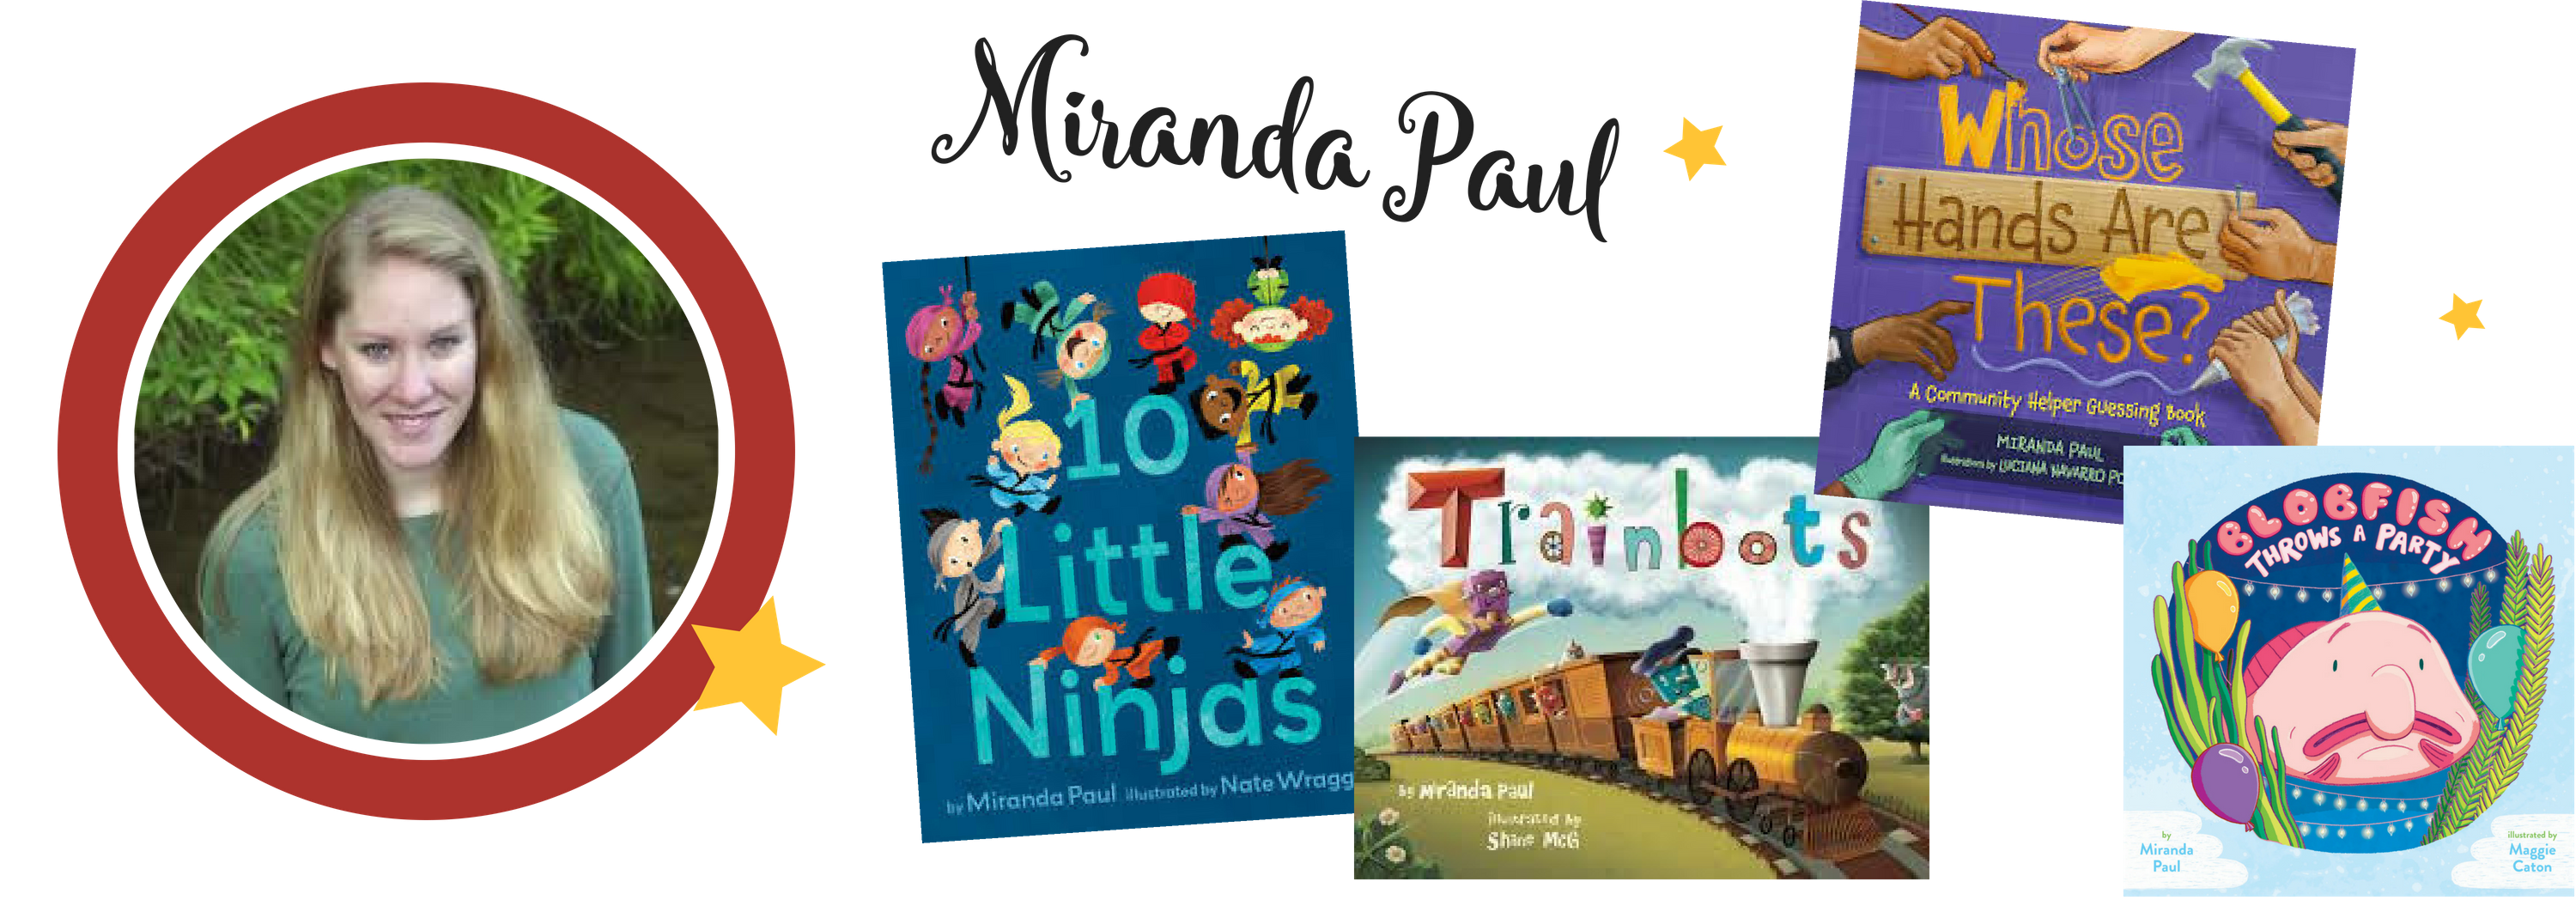 Miranda Paul for Children's Book Academy